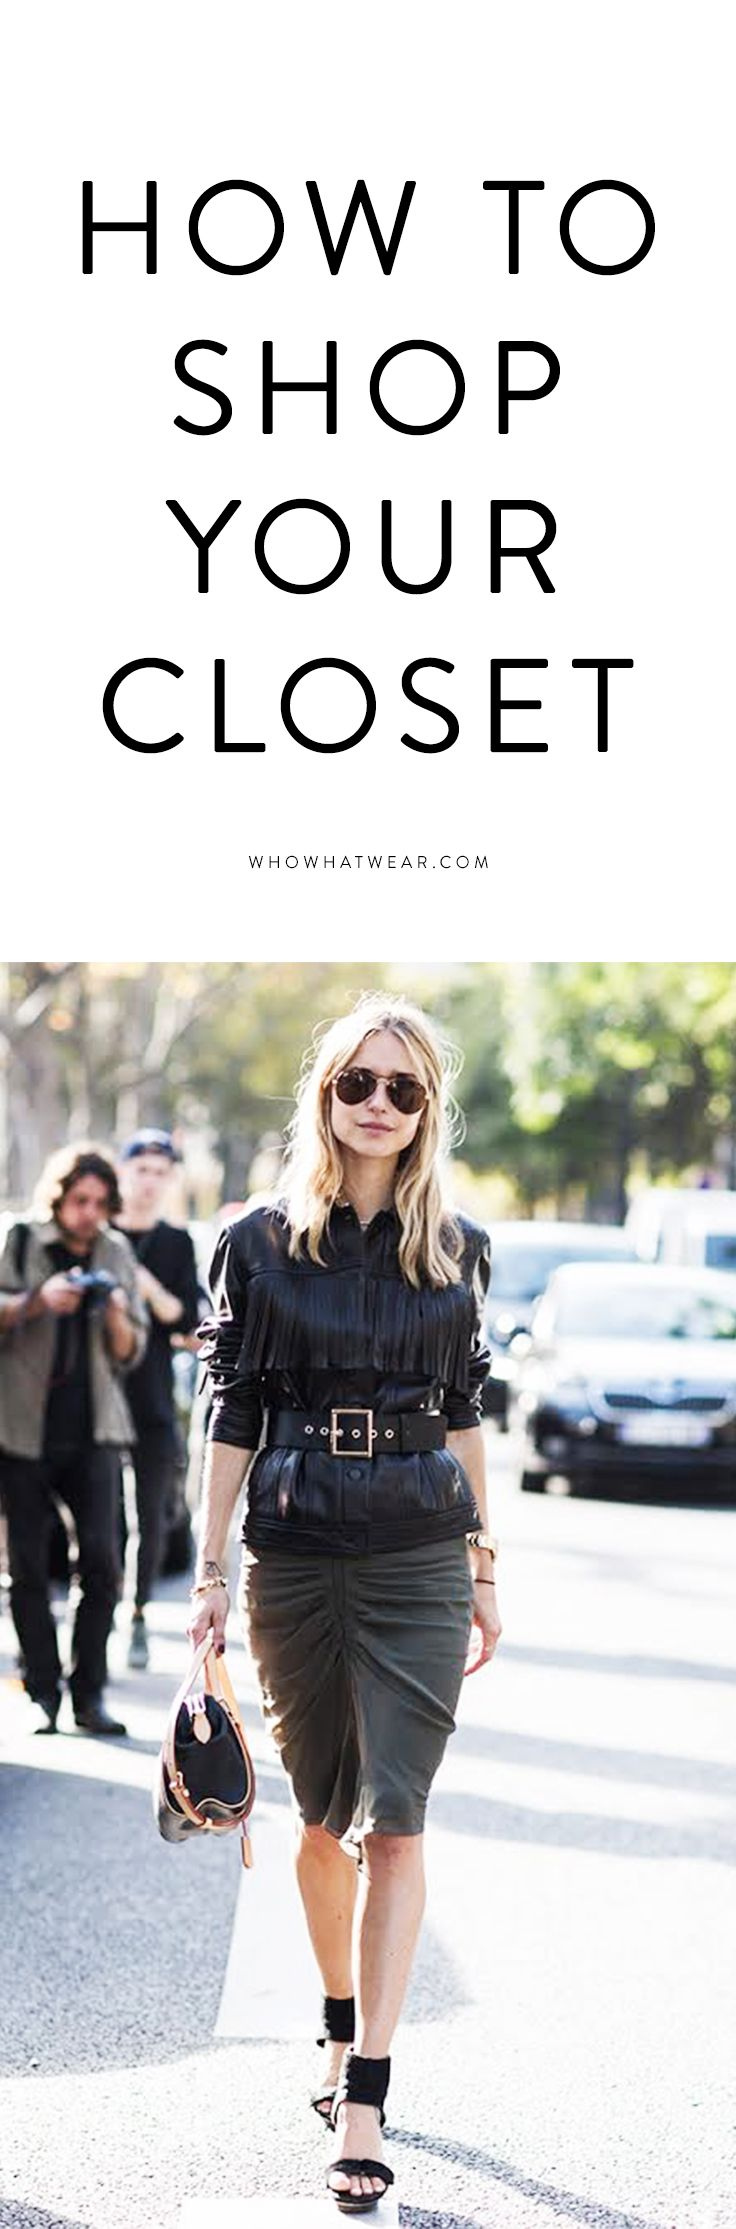 Create new outfits with your best pieces